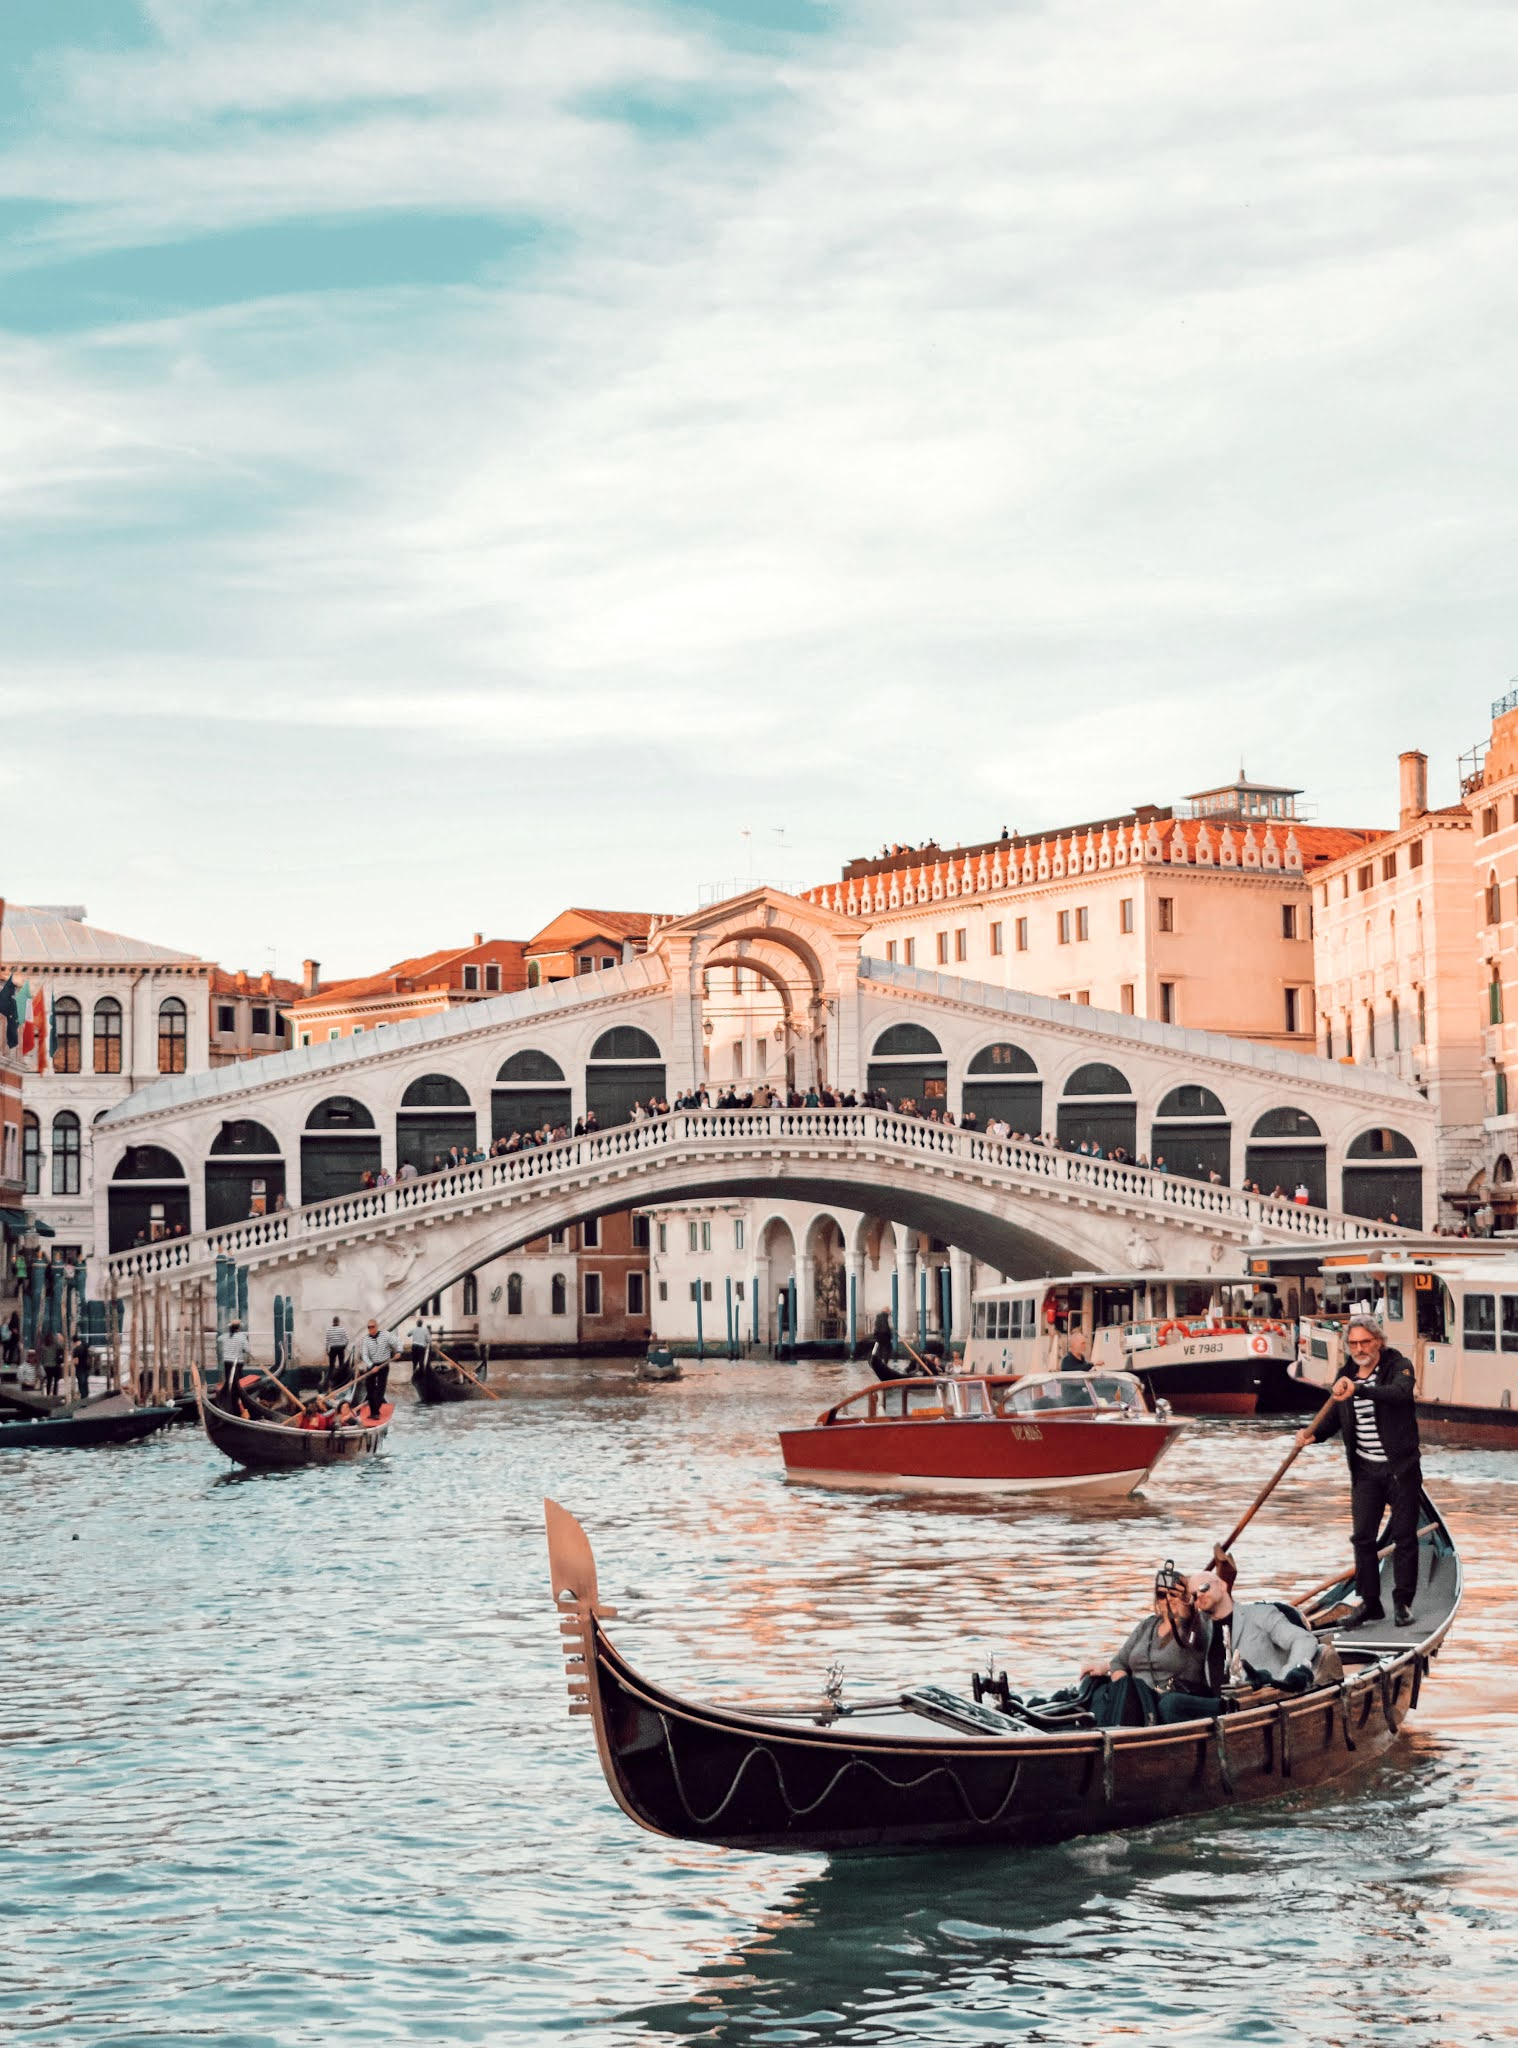 Gondola on the canals of Venice, Italy